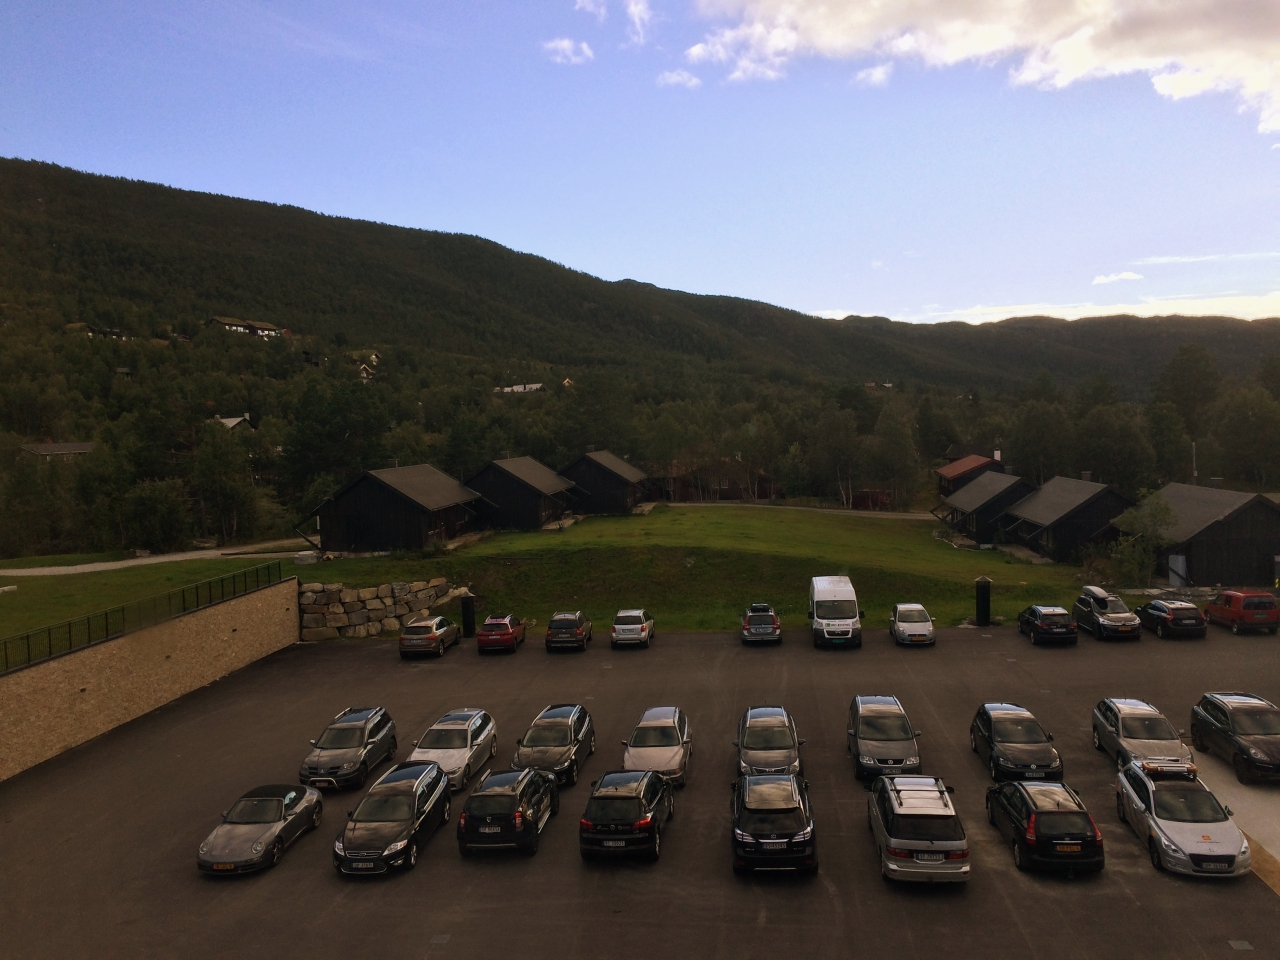 Vestlia Resort Parking View